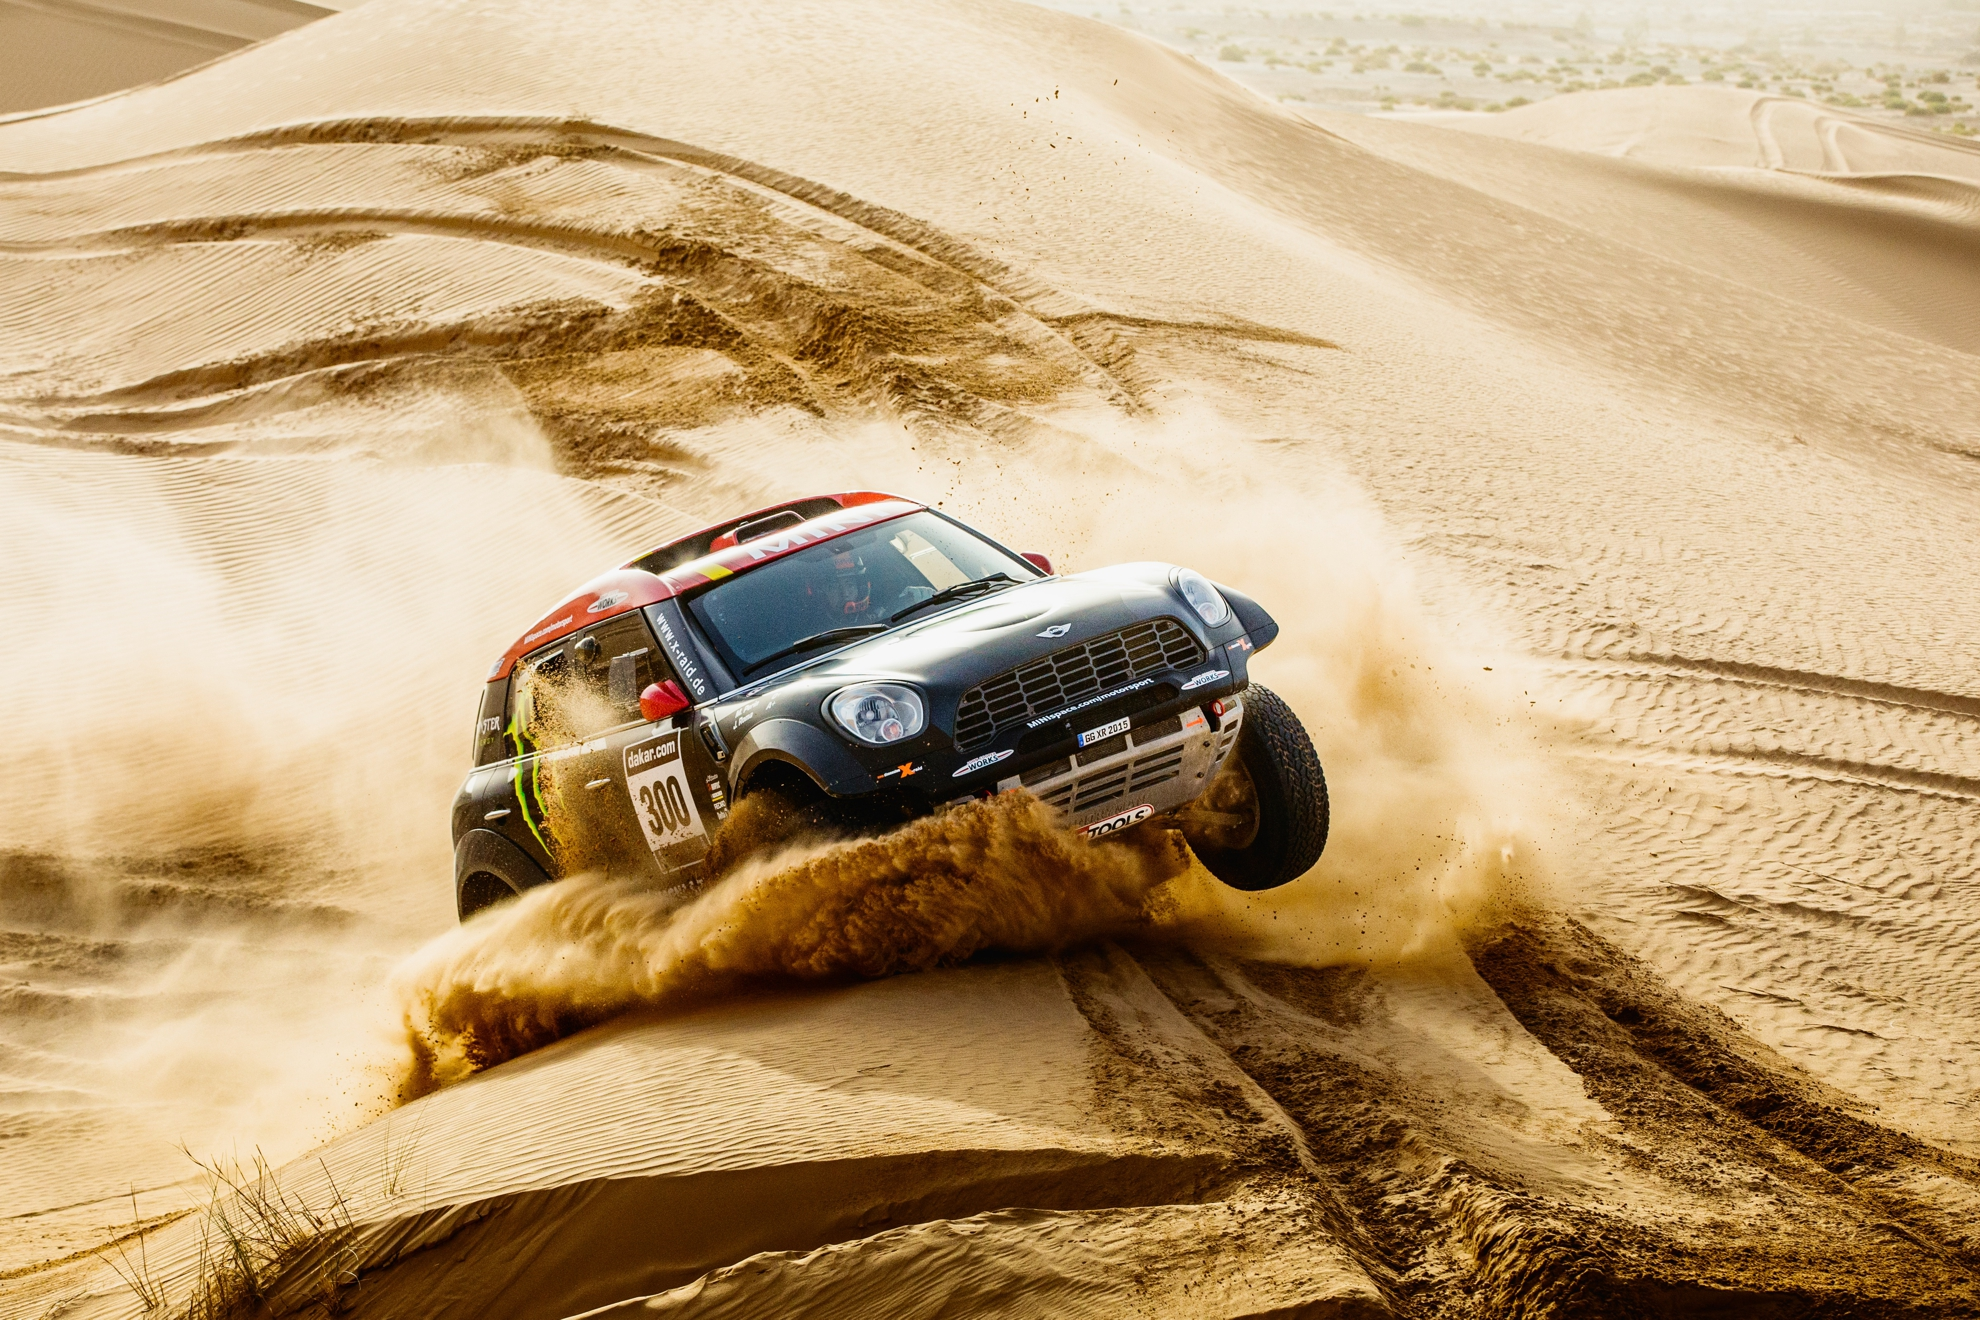 MINI-2015-Dakar-Rally